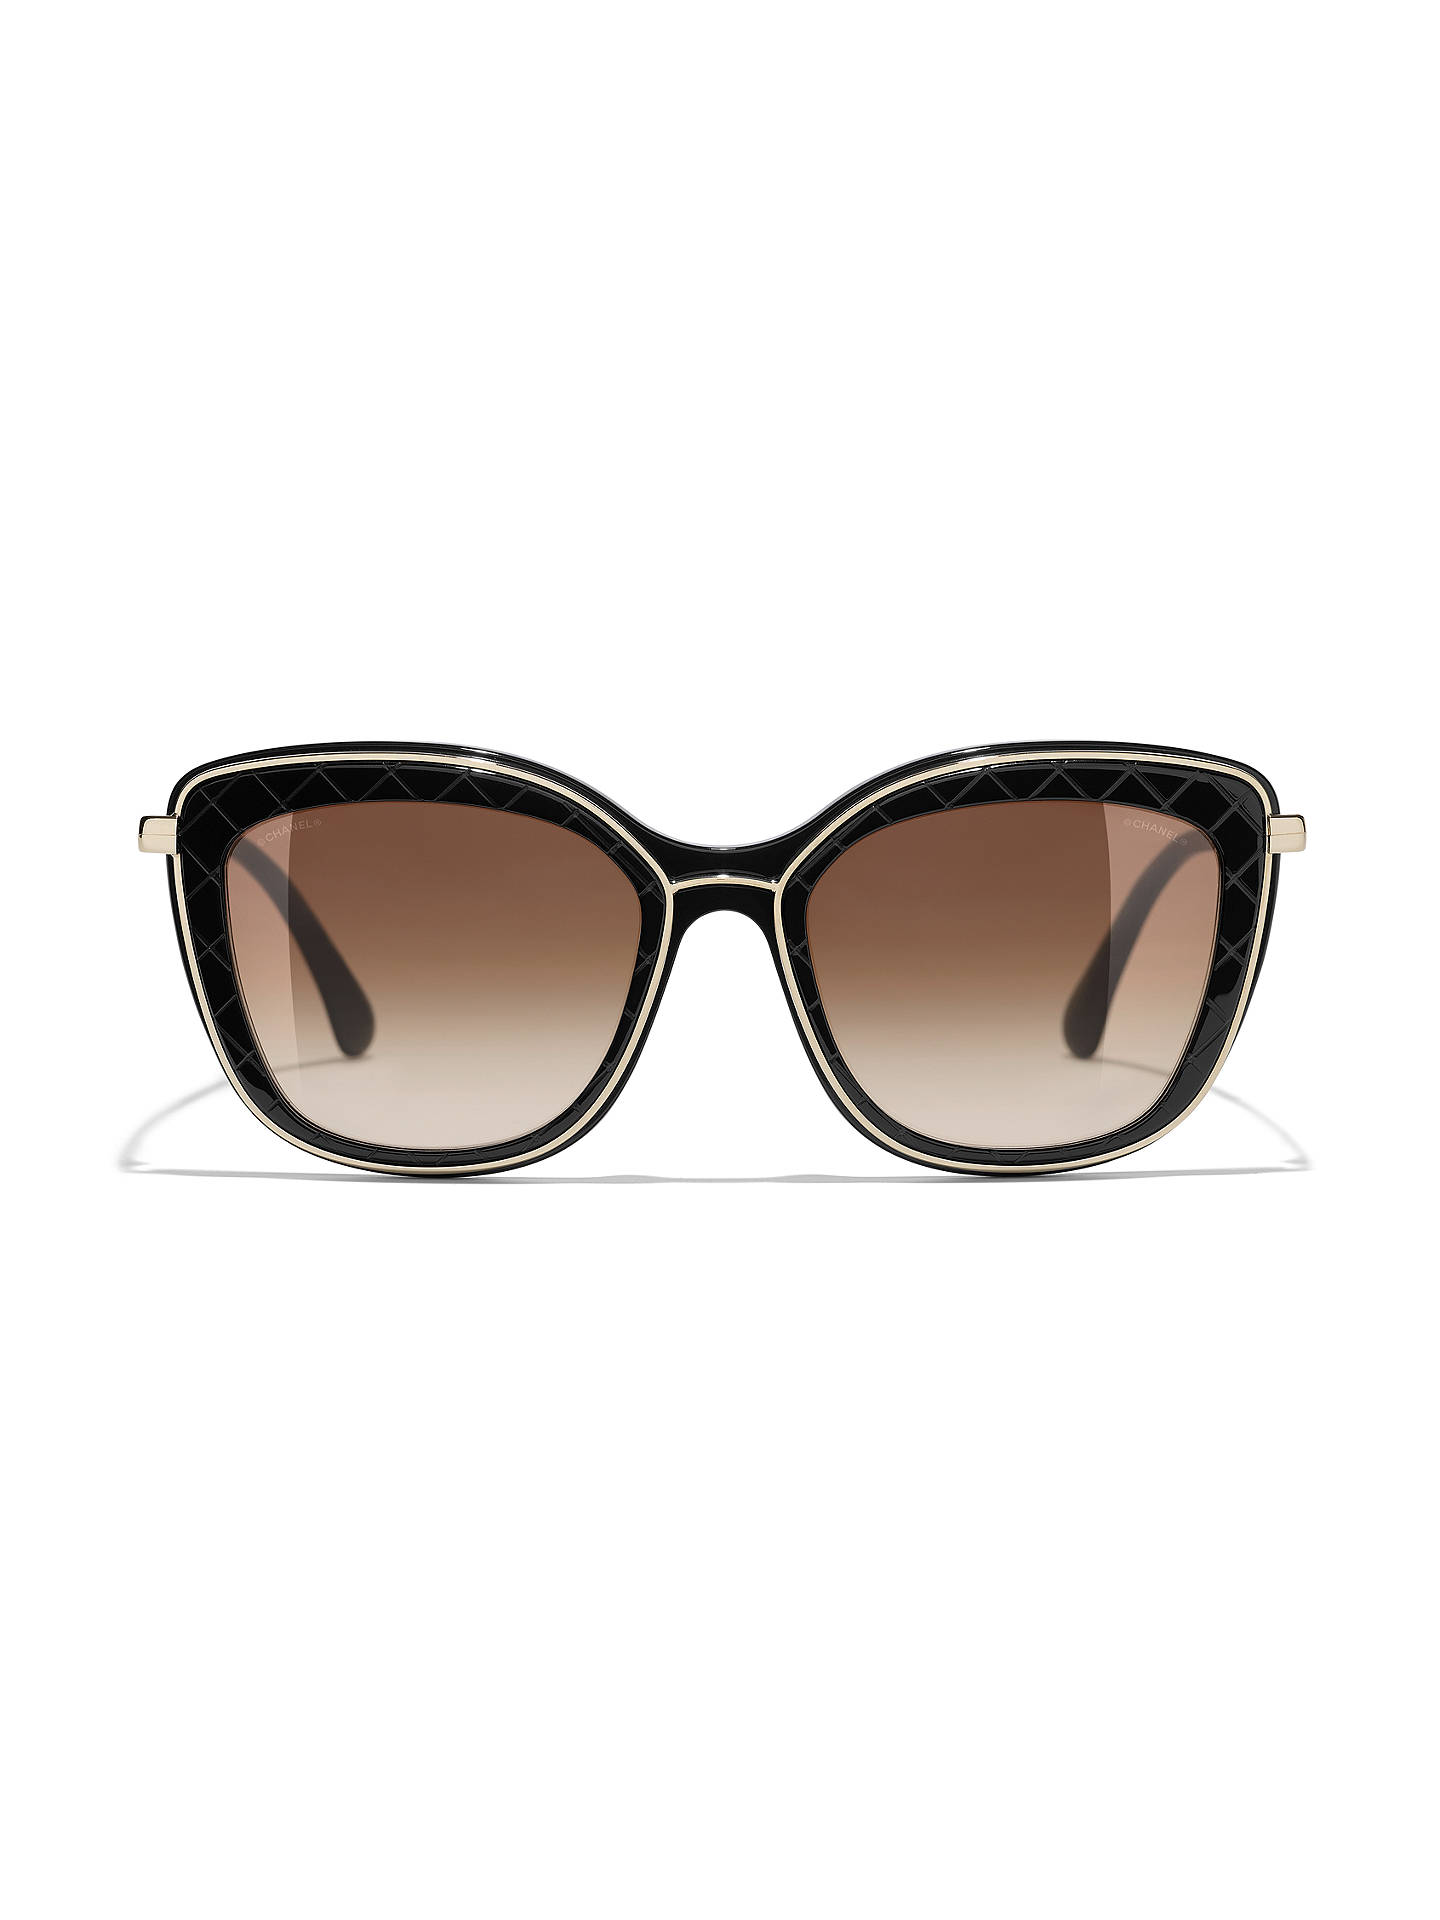 9557863e57085 ... Buy CHANEL Butterfly Sunglasses CH4238 Black Brown Gradient Online at  johnlewis.com ...